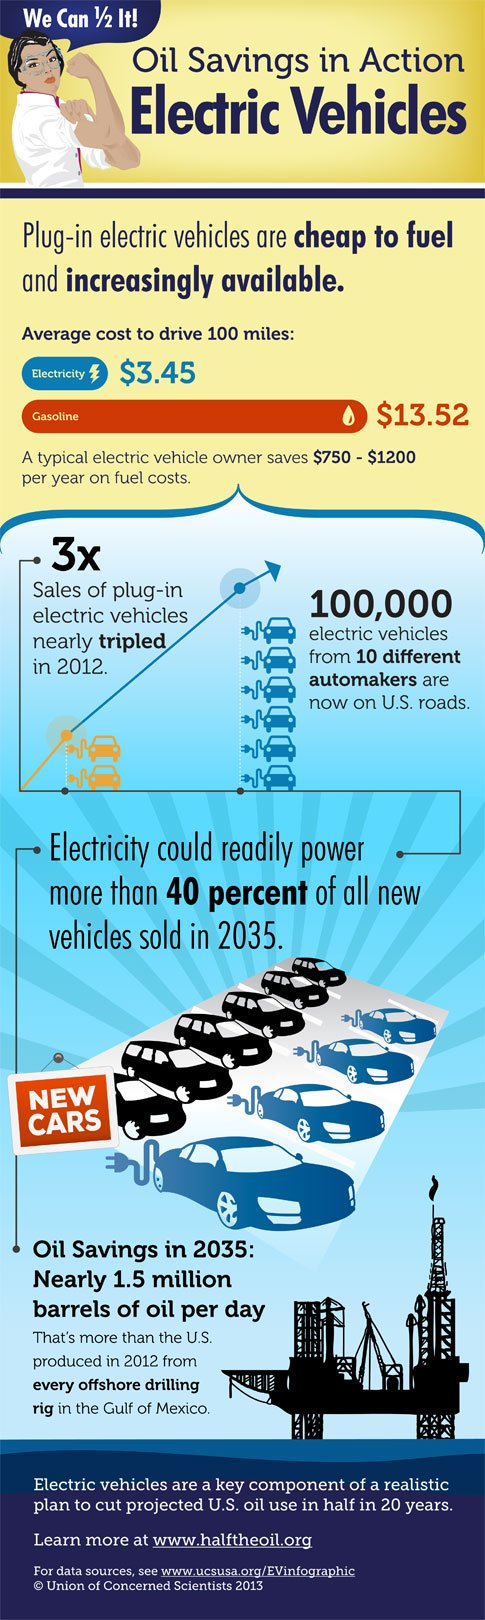 Electric Vehicle Sales Infographic